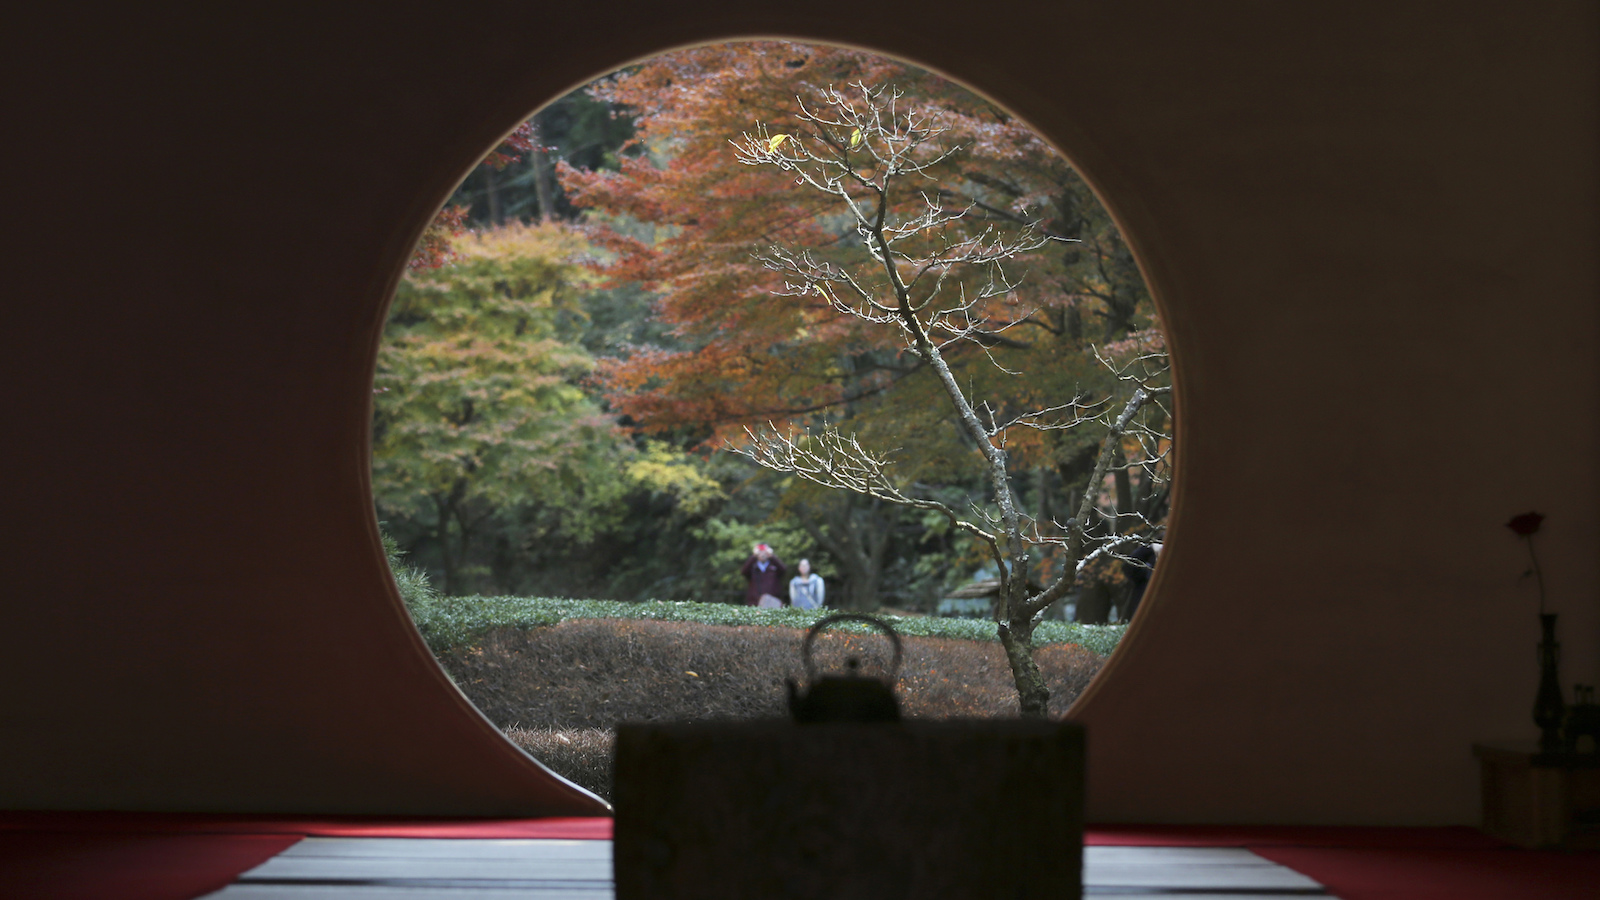 Visitors walk around the ground to view autumn colors they are seen through a circle window of Meigetsuin Temple in Kamakura, near Tokyo, Saturday, Dec. 3, 2016. (AP Photo/Koji Sasahara)